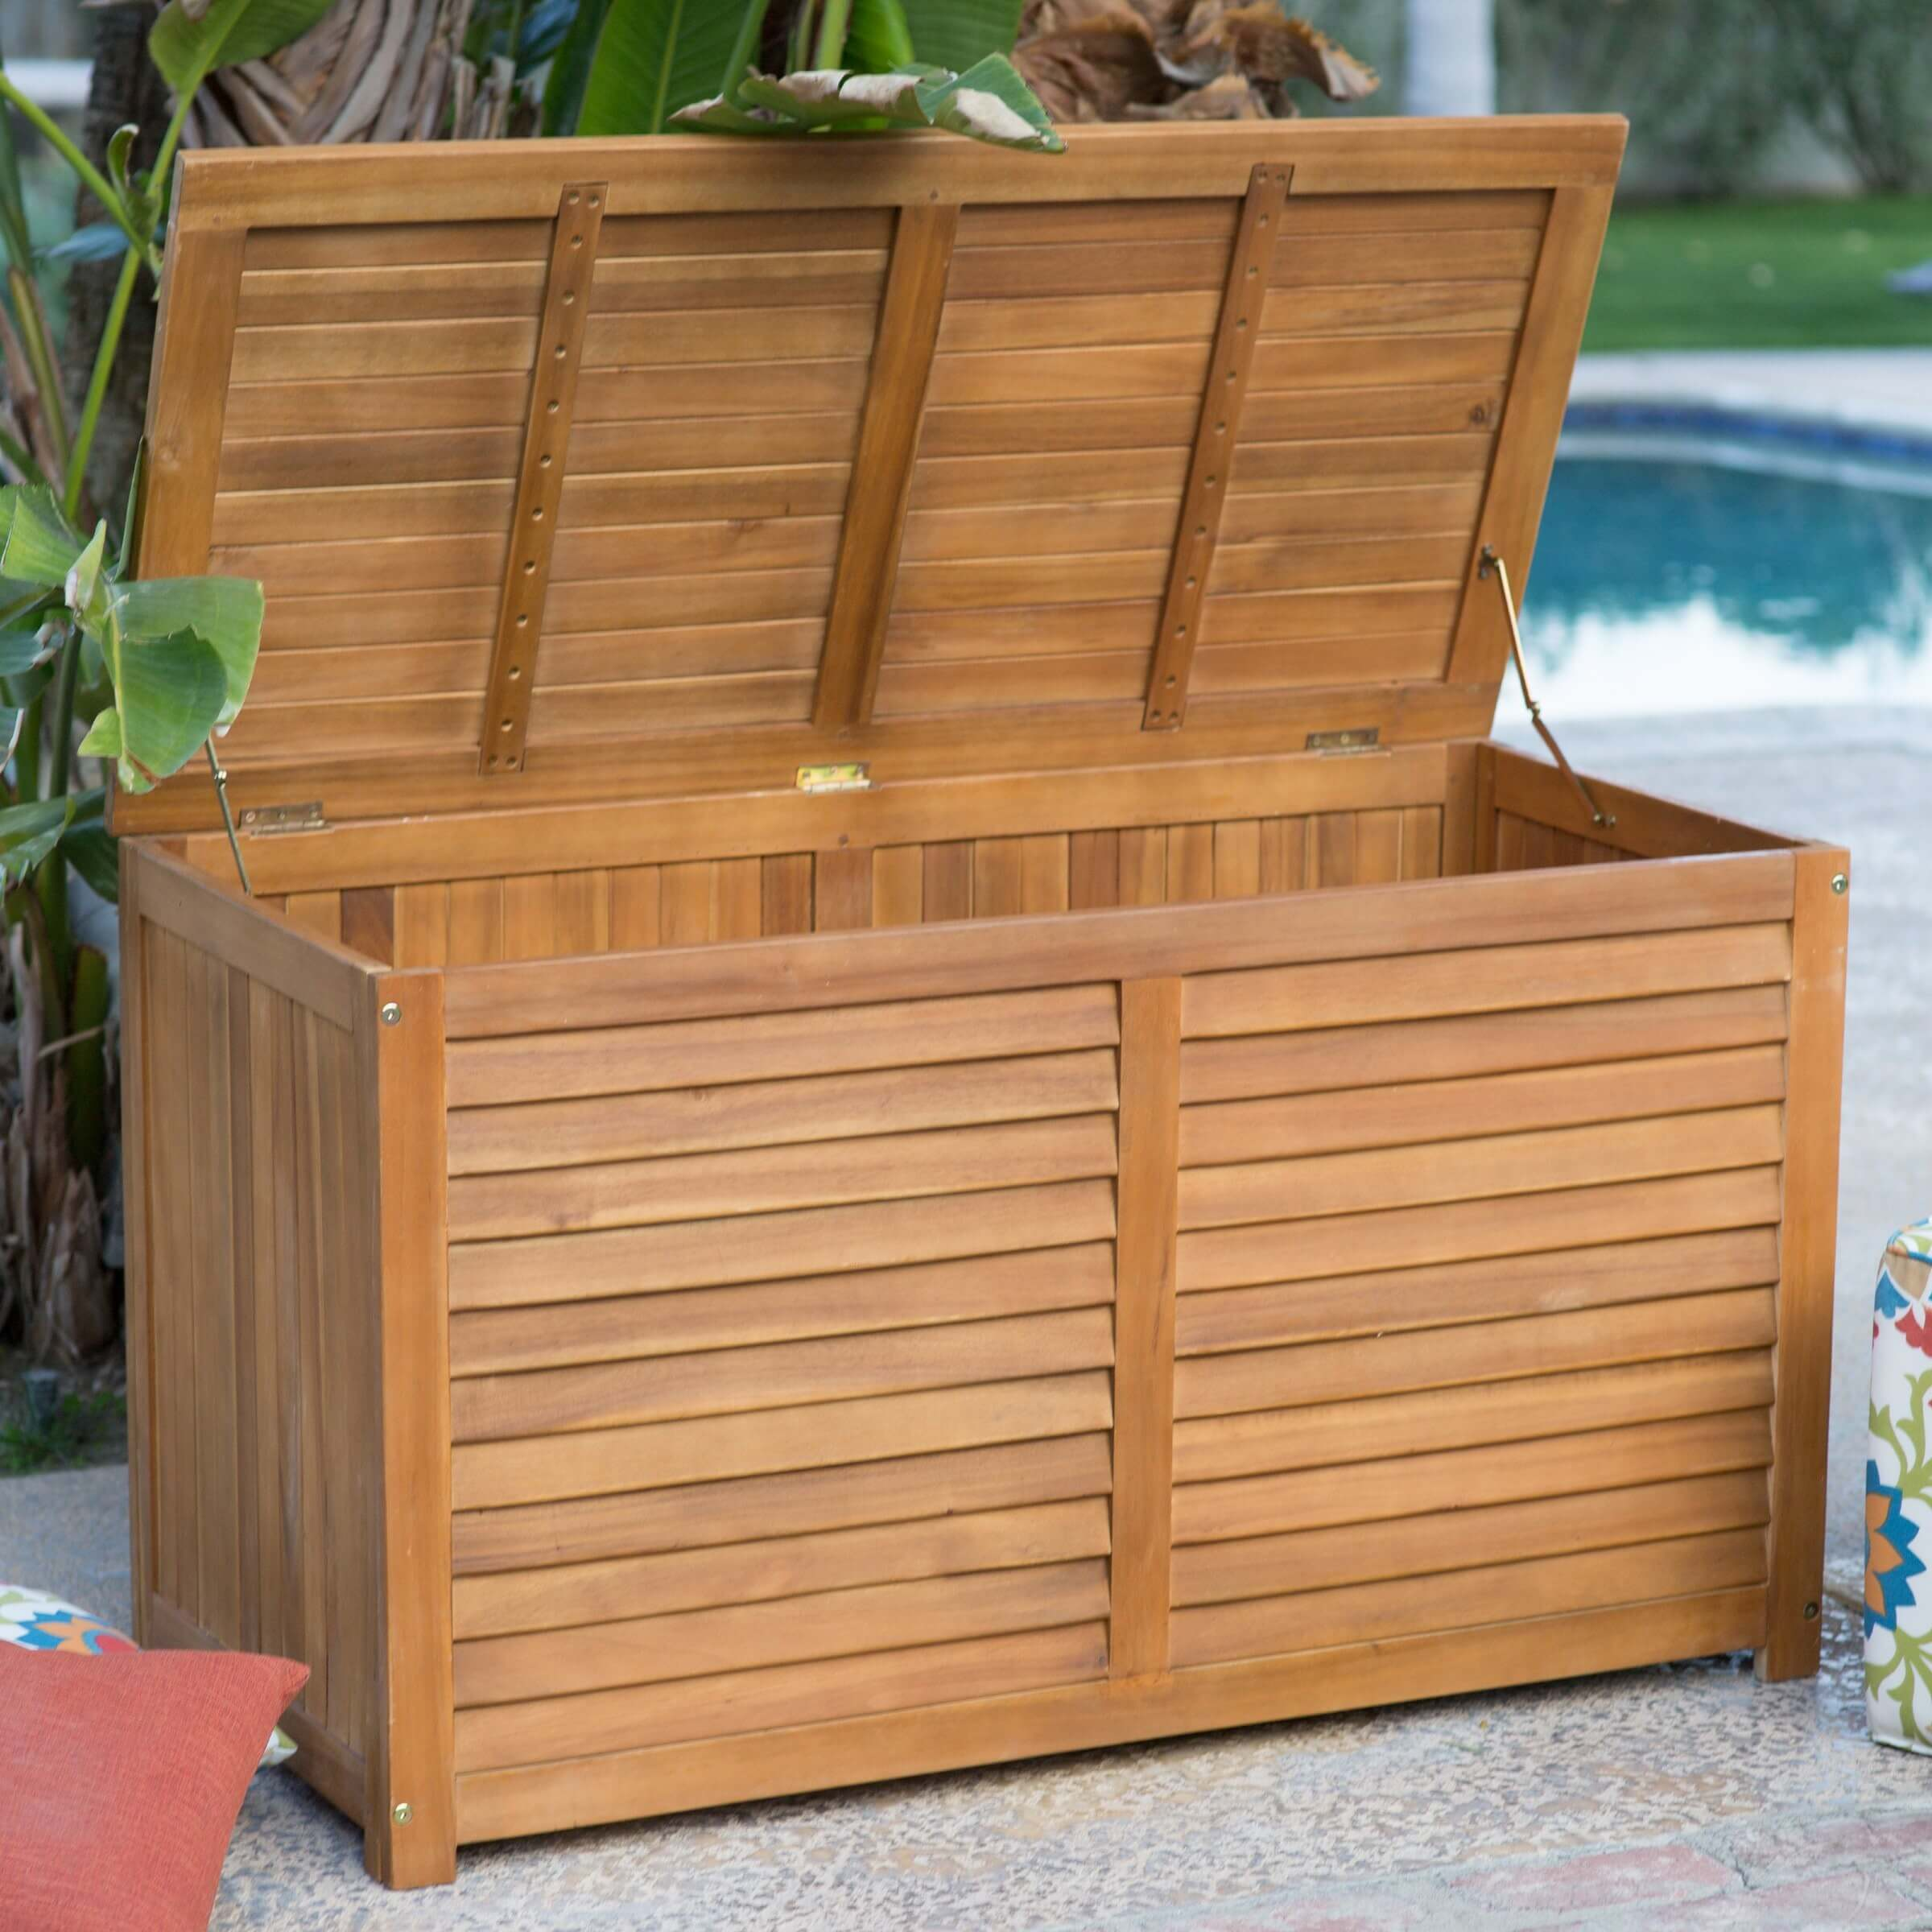 Wicker Outdoor Serving Station